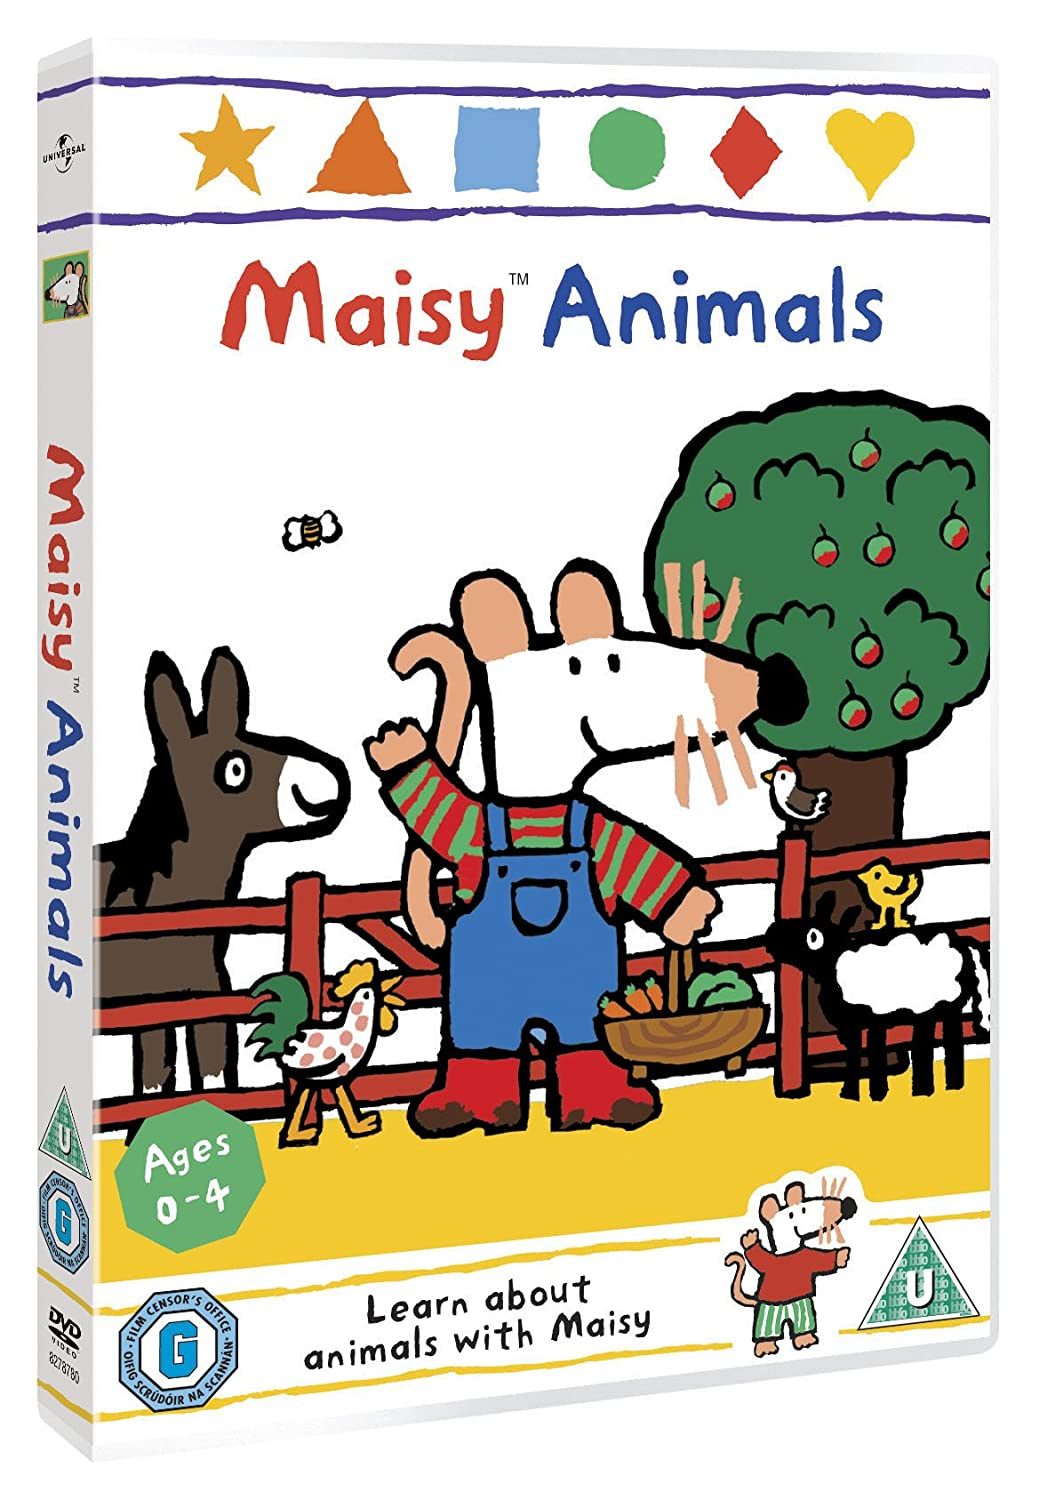 maisy animals dvd amazon co uk neil morrissey dvd u0026 blu ray